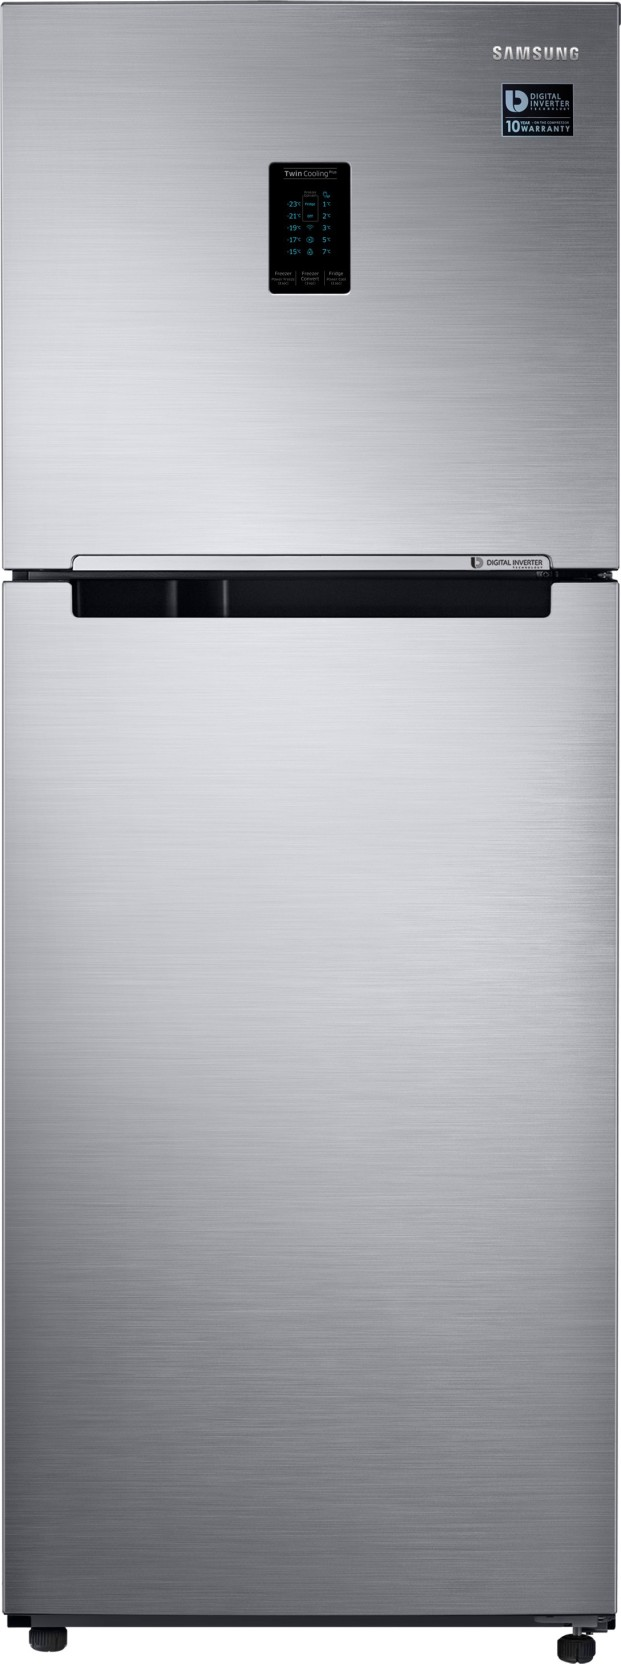 Samsung 324 L Frost Free Double Door 3 Star Refrigerator. ADD TO CART